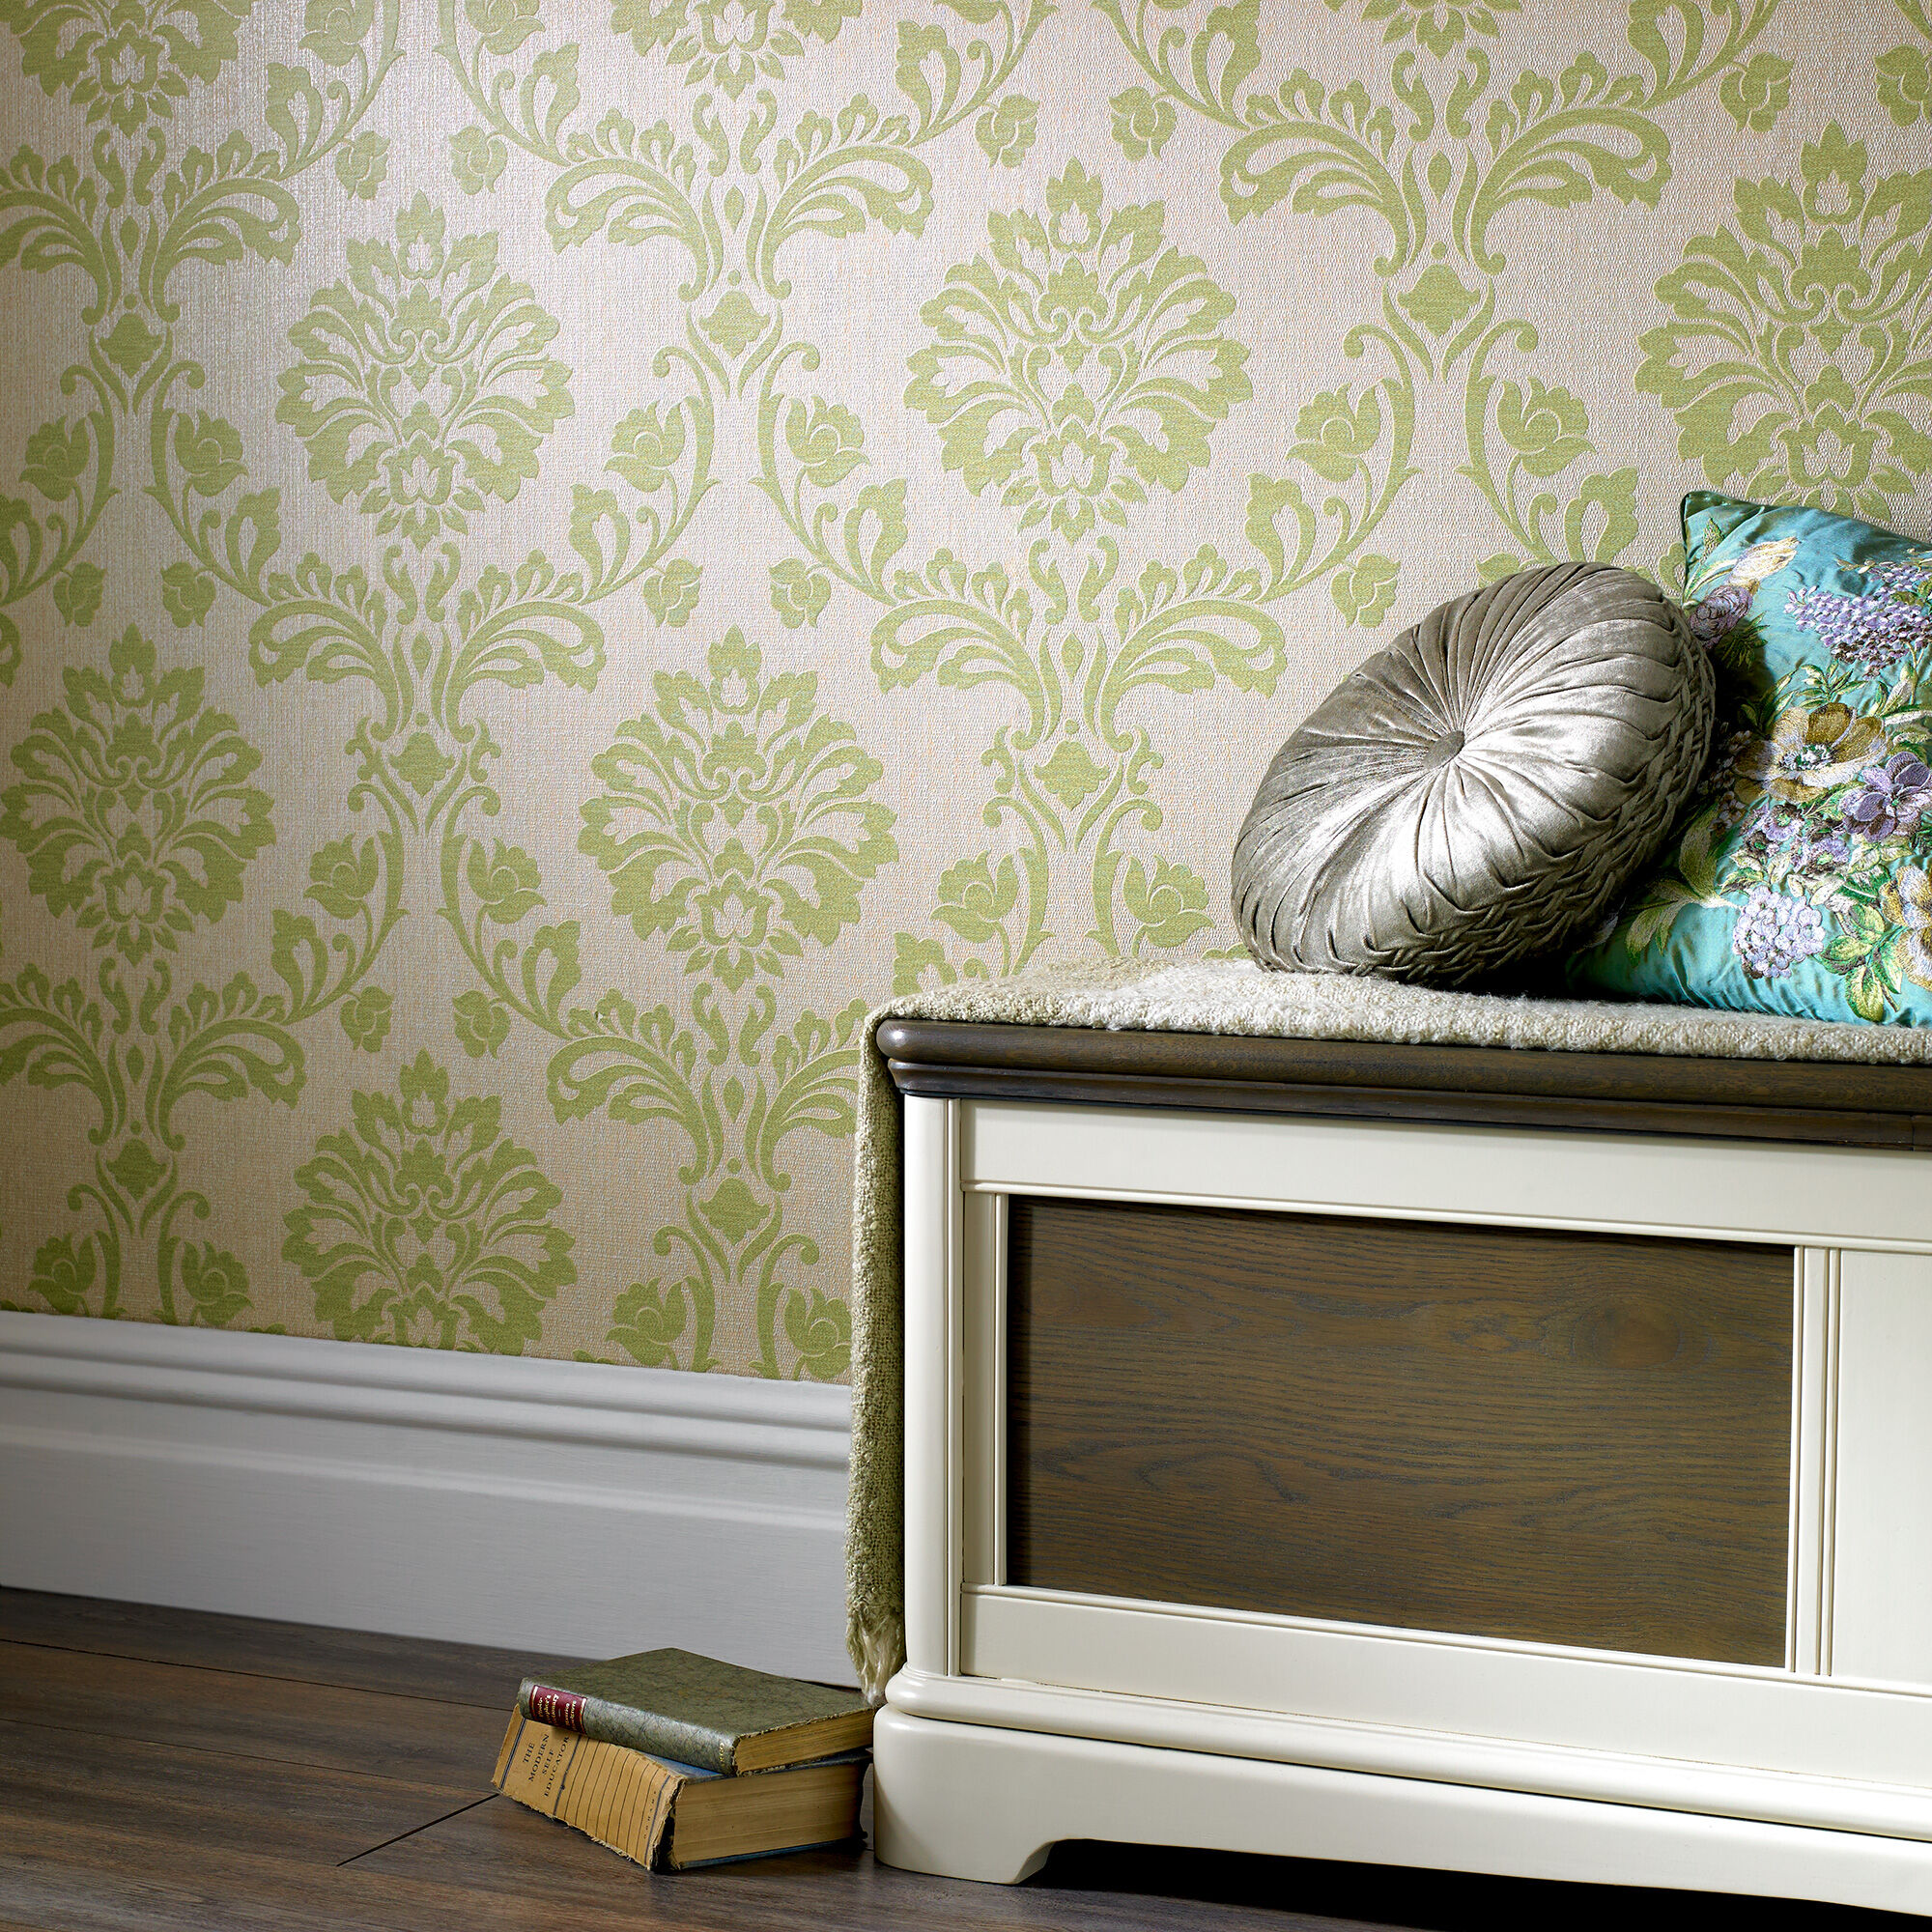 Green Wallpaper Designs For Living Room Images Galleries With A Bite